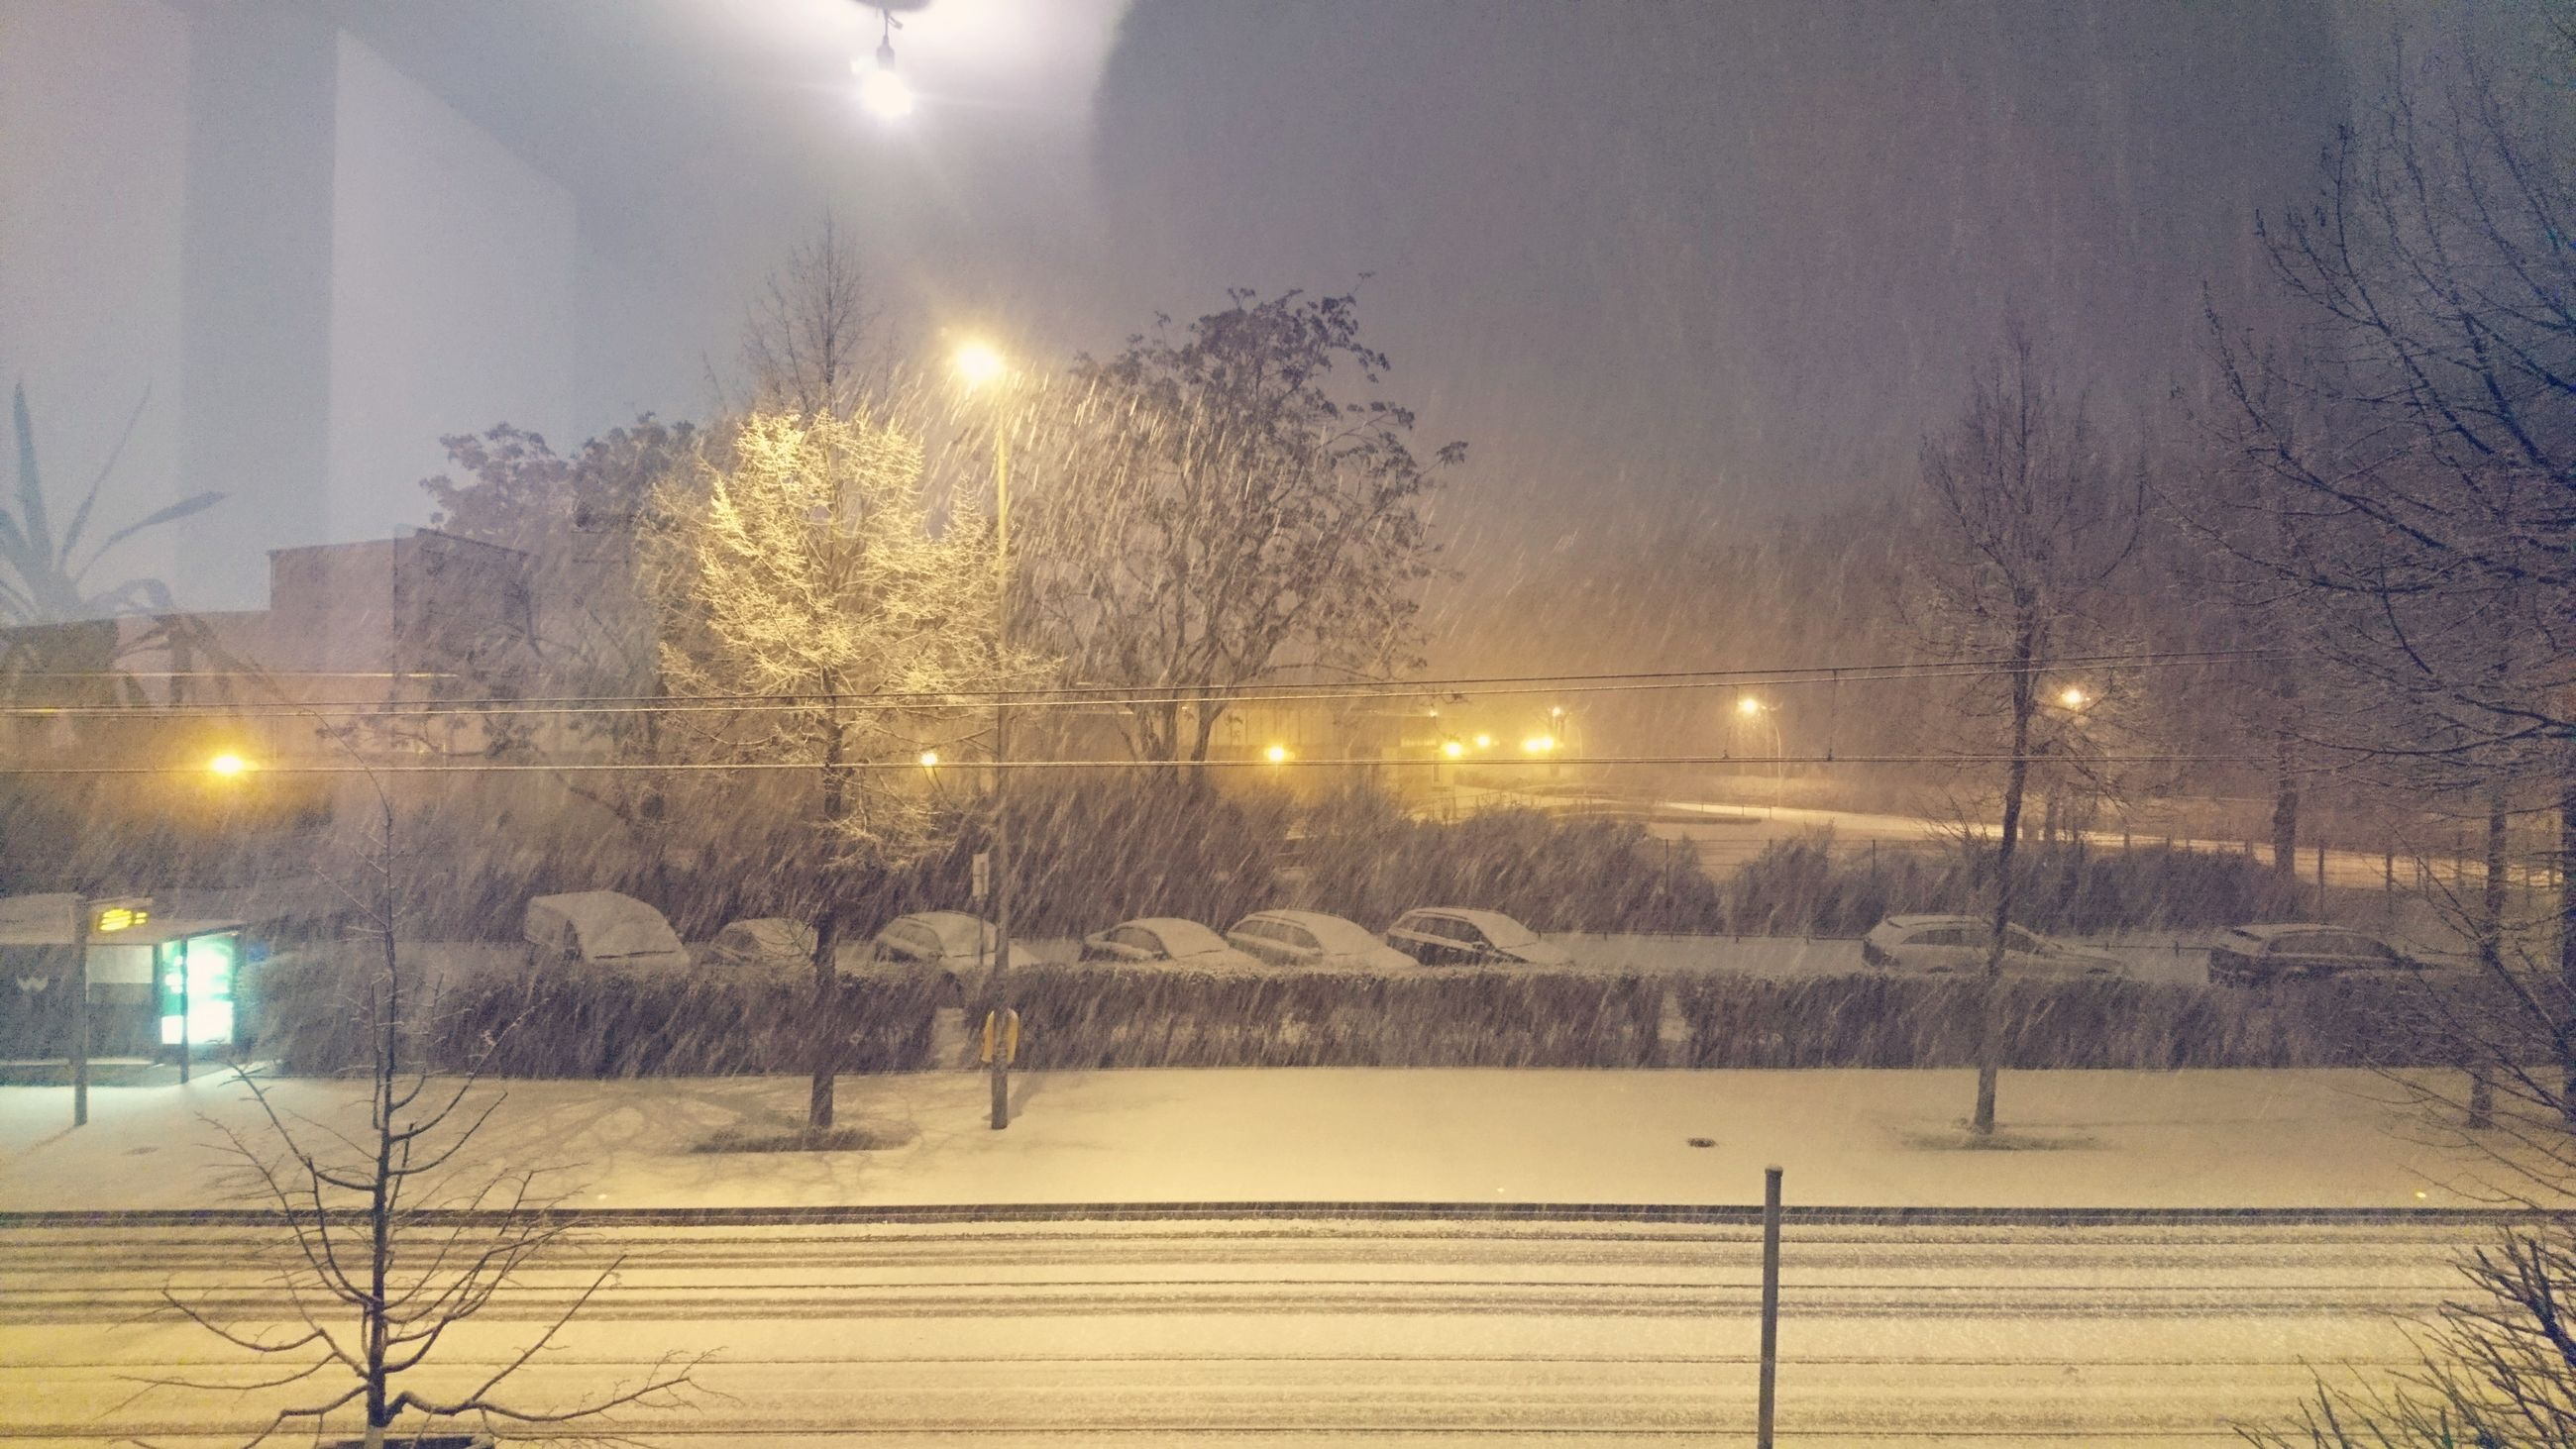 illuminated, cold temperature, winter, tree, night, no people, snow, sky, outdoors, soccer field, nature, match - sport